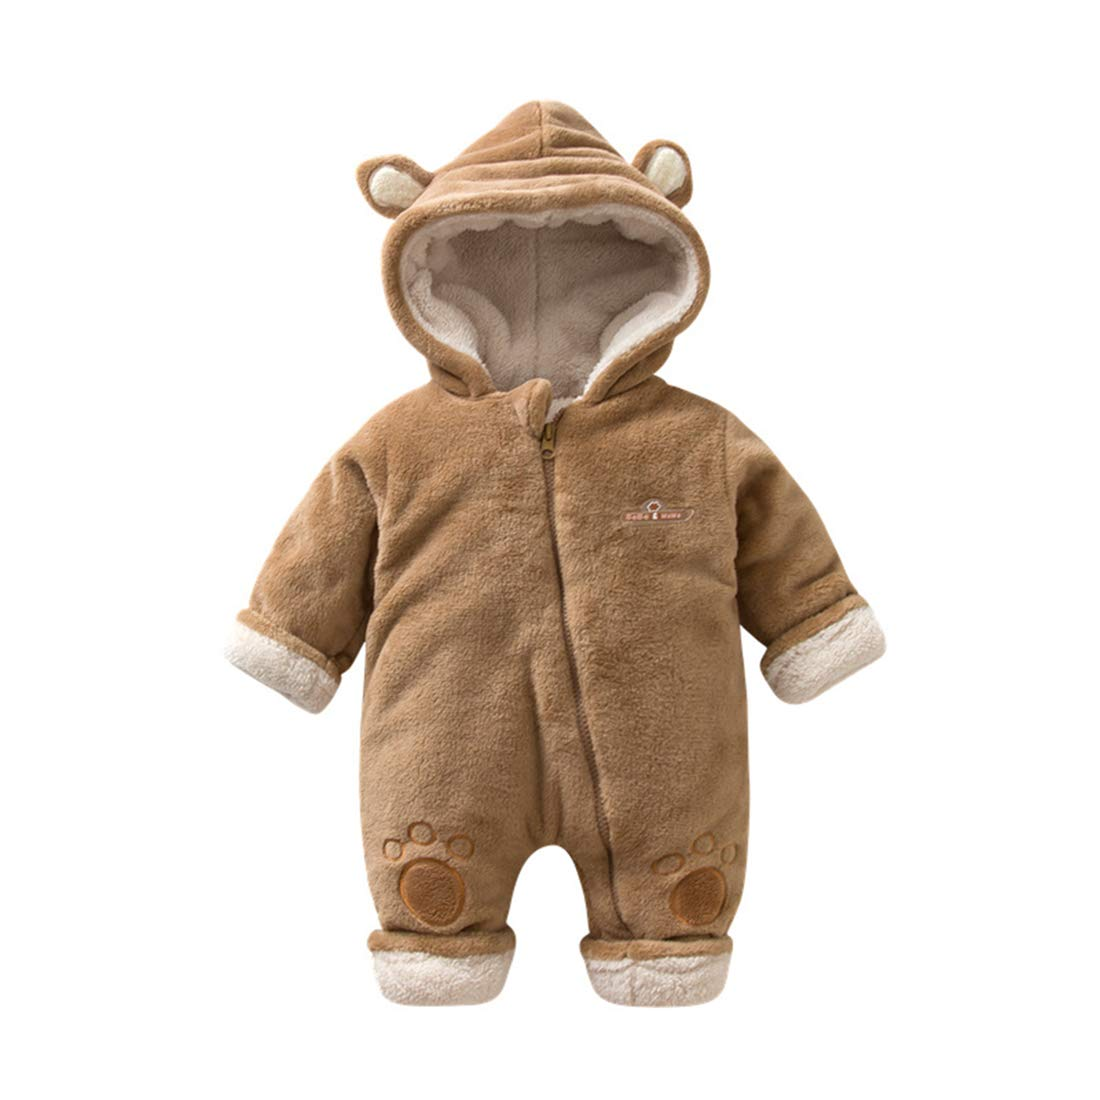 Fairy Baby Infant Baby Boys Girls 3D Ears Romper Winter Warm Outfit Hooded Jumpsuit